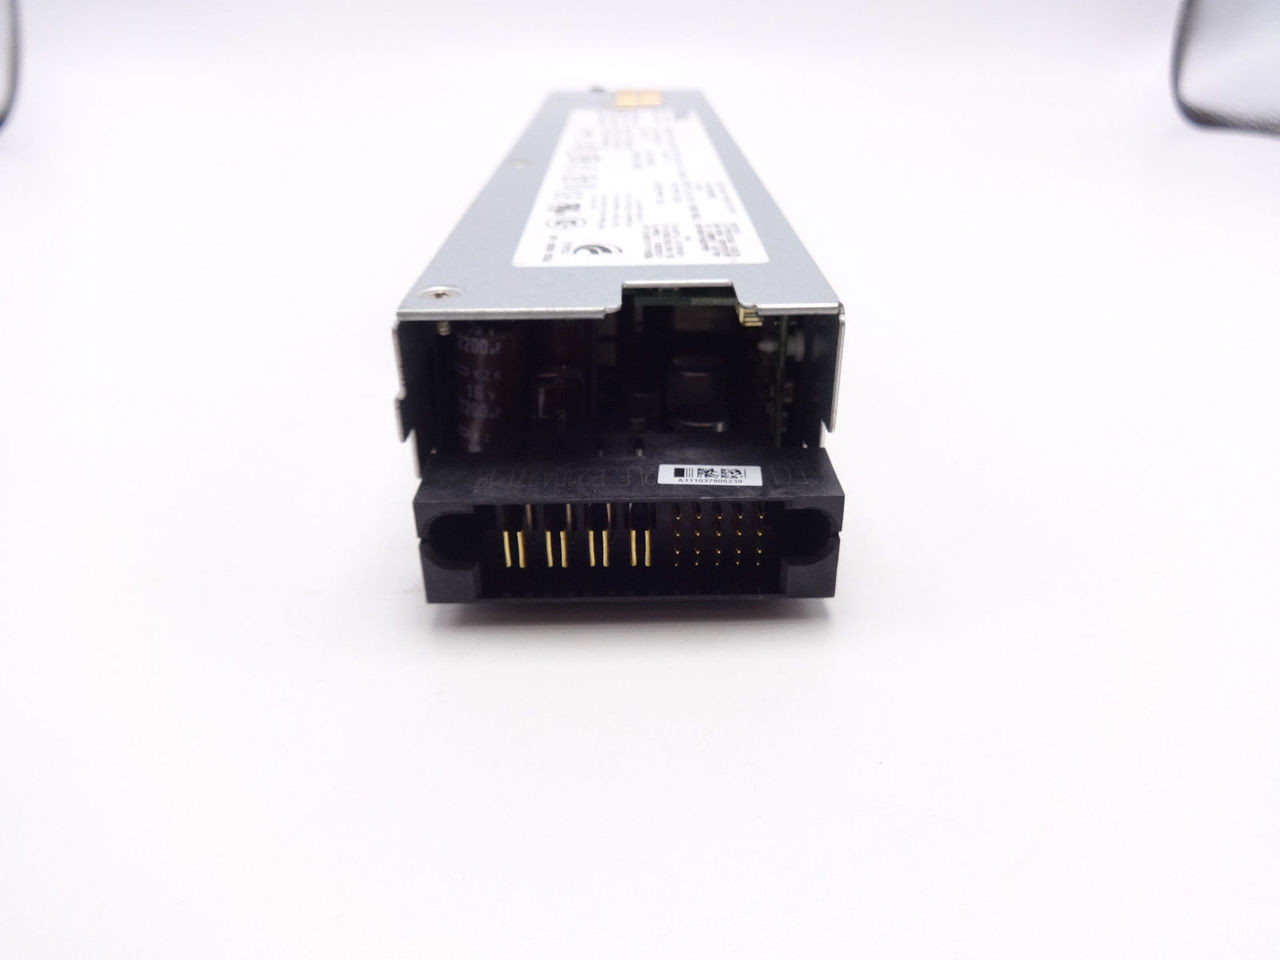 Power supply FOR Dell PowerEdge R410 PowerVault 500W Power Supply 60FPK NX300 MHD8J H319J H318J DPS-500RB A500E-S0